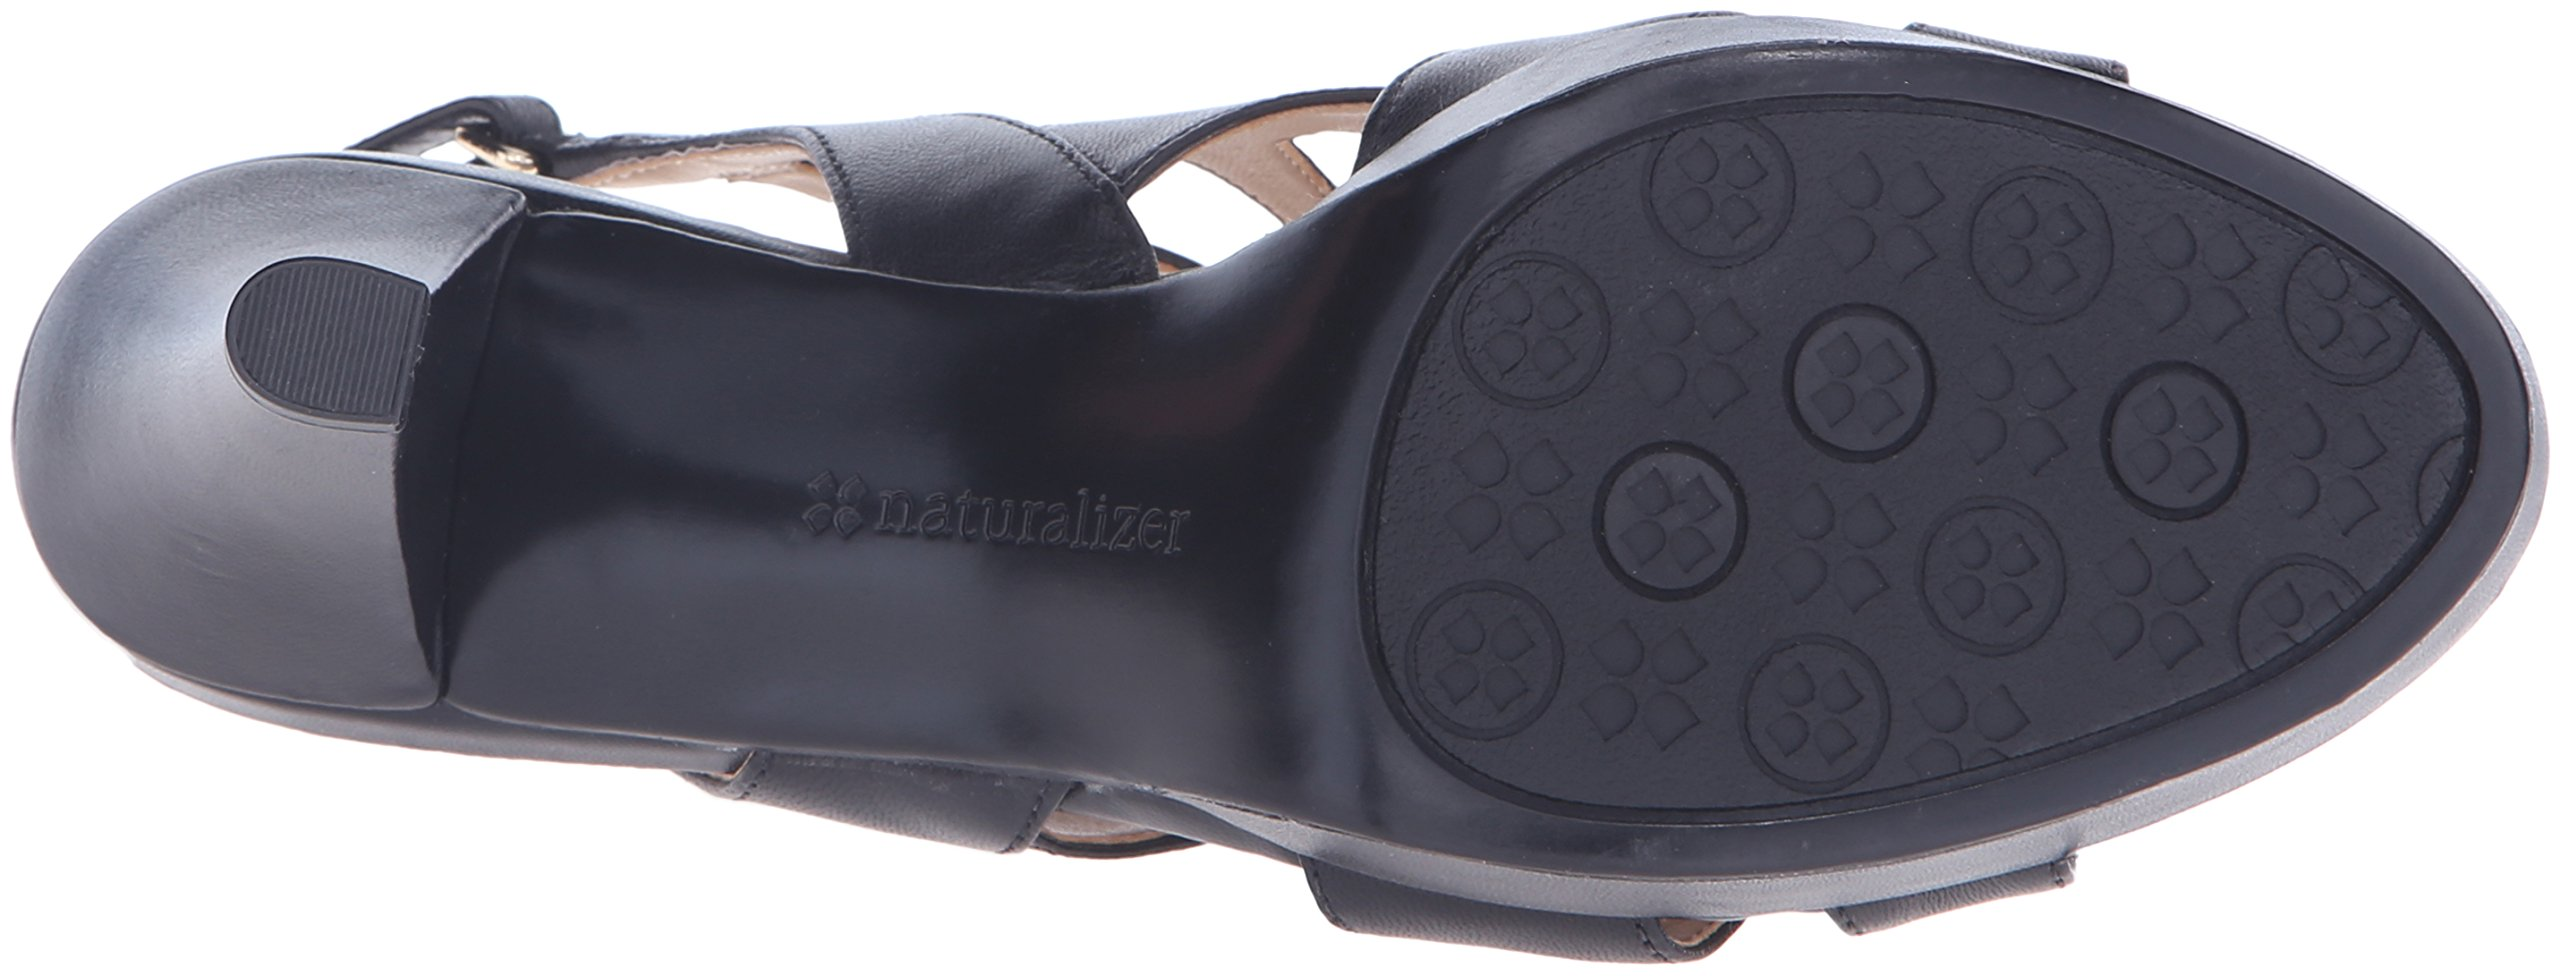 Naturalizer Women's Pressley Platform Dress Sandal, Black, 7 W US by Naturalizer (Image #3)